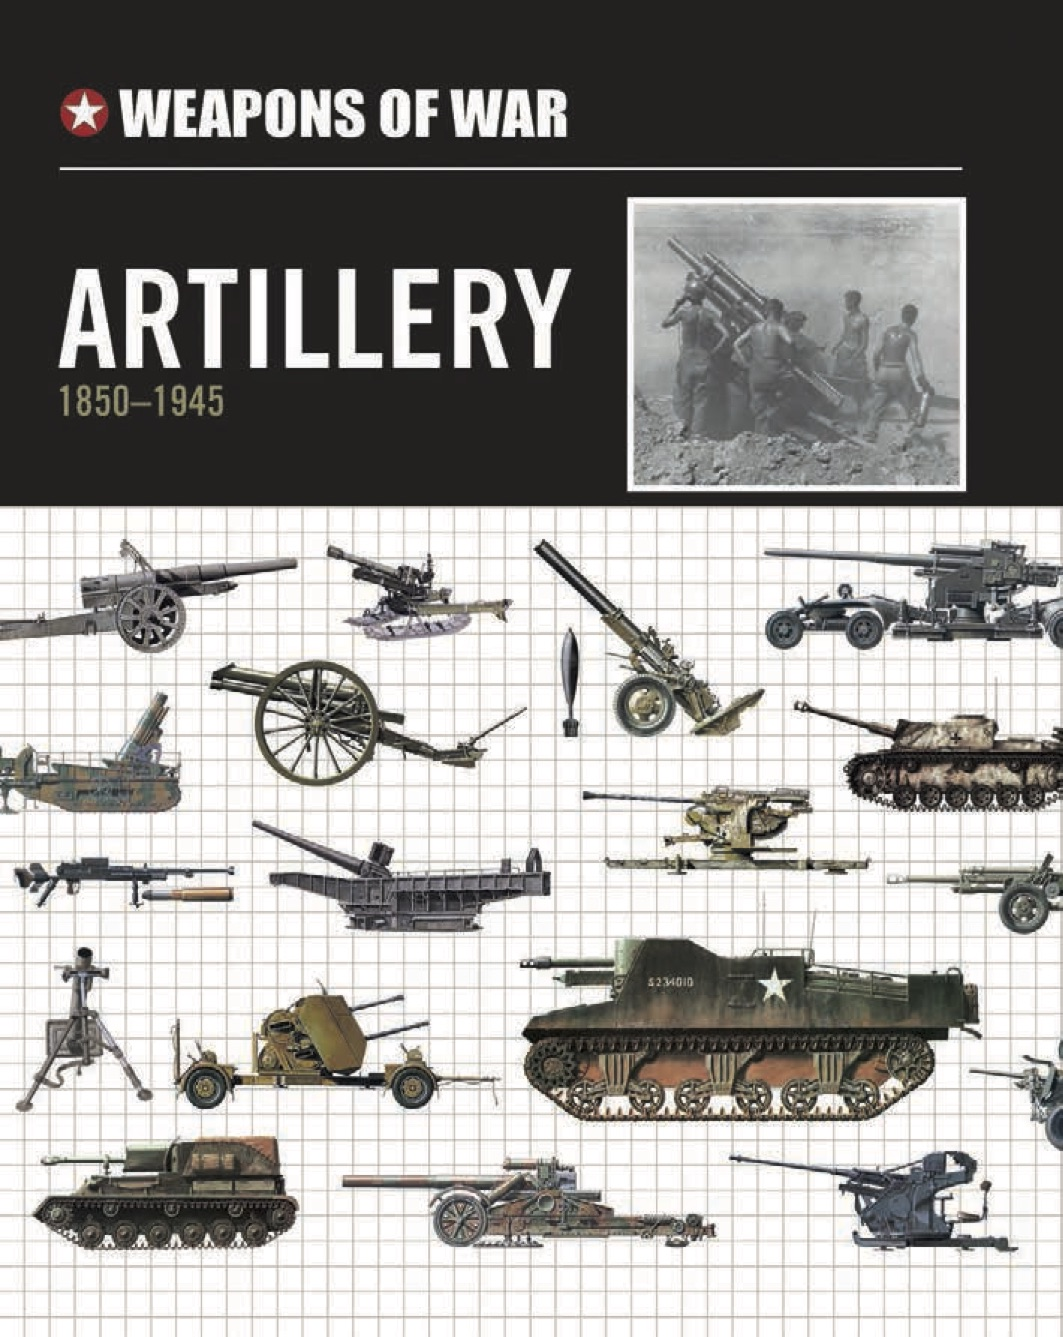 Artillery 1850-1945 – Weapons of War